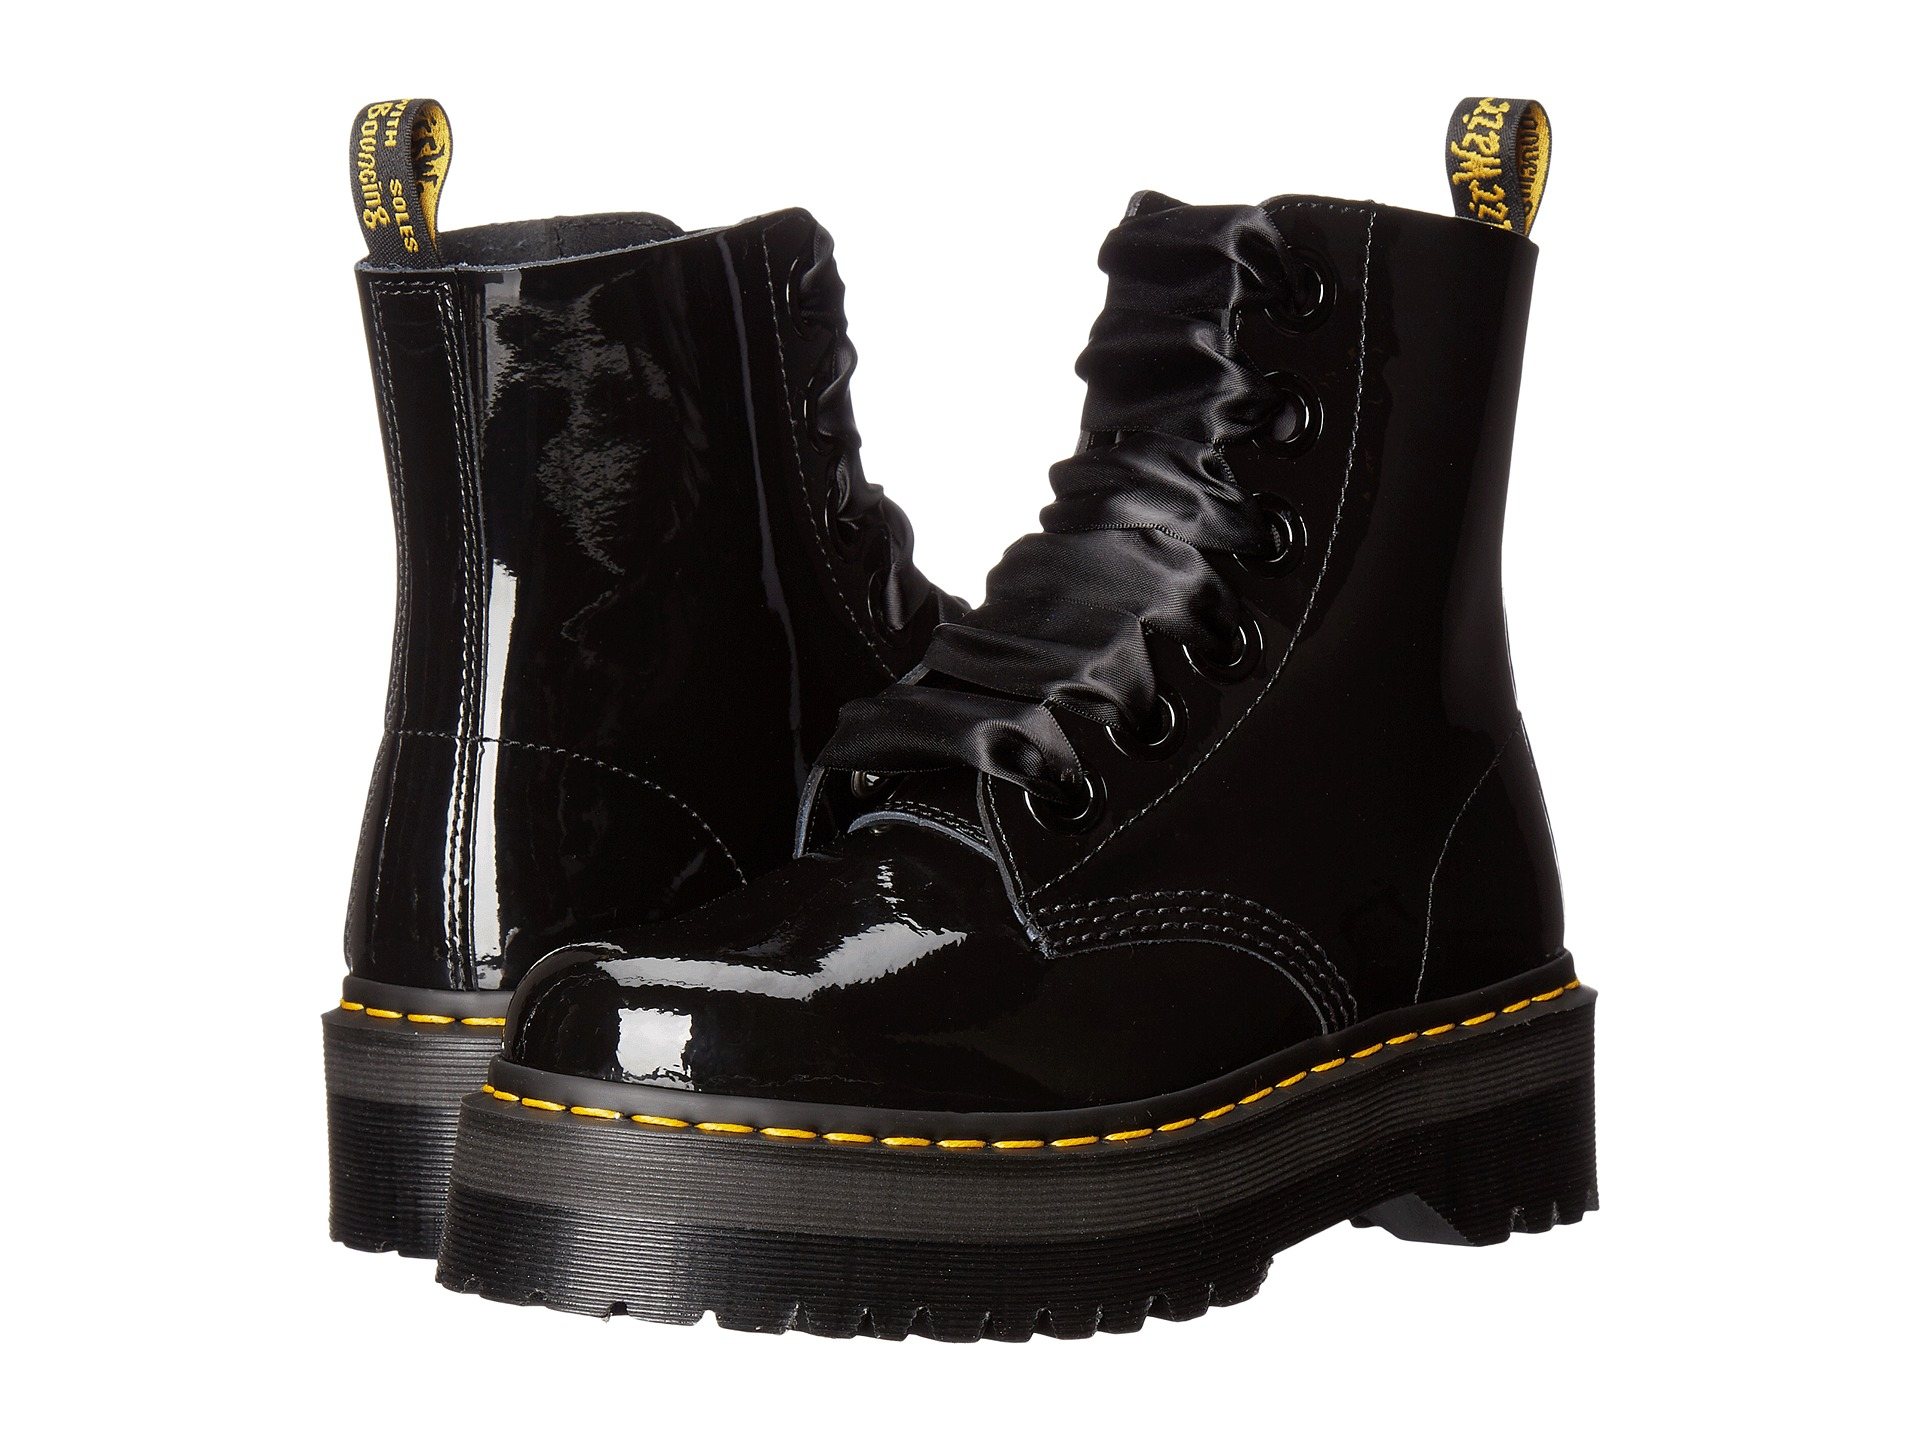 3628305 p 4x - Boots Wedding Gifts